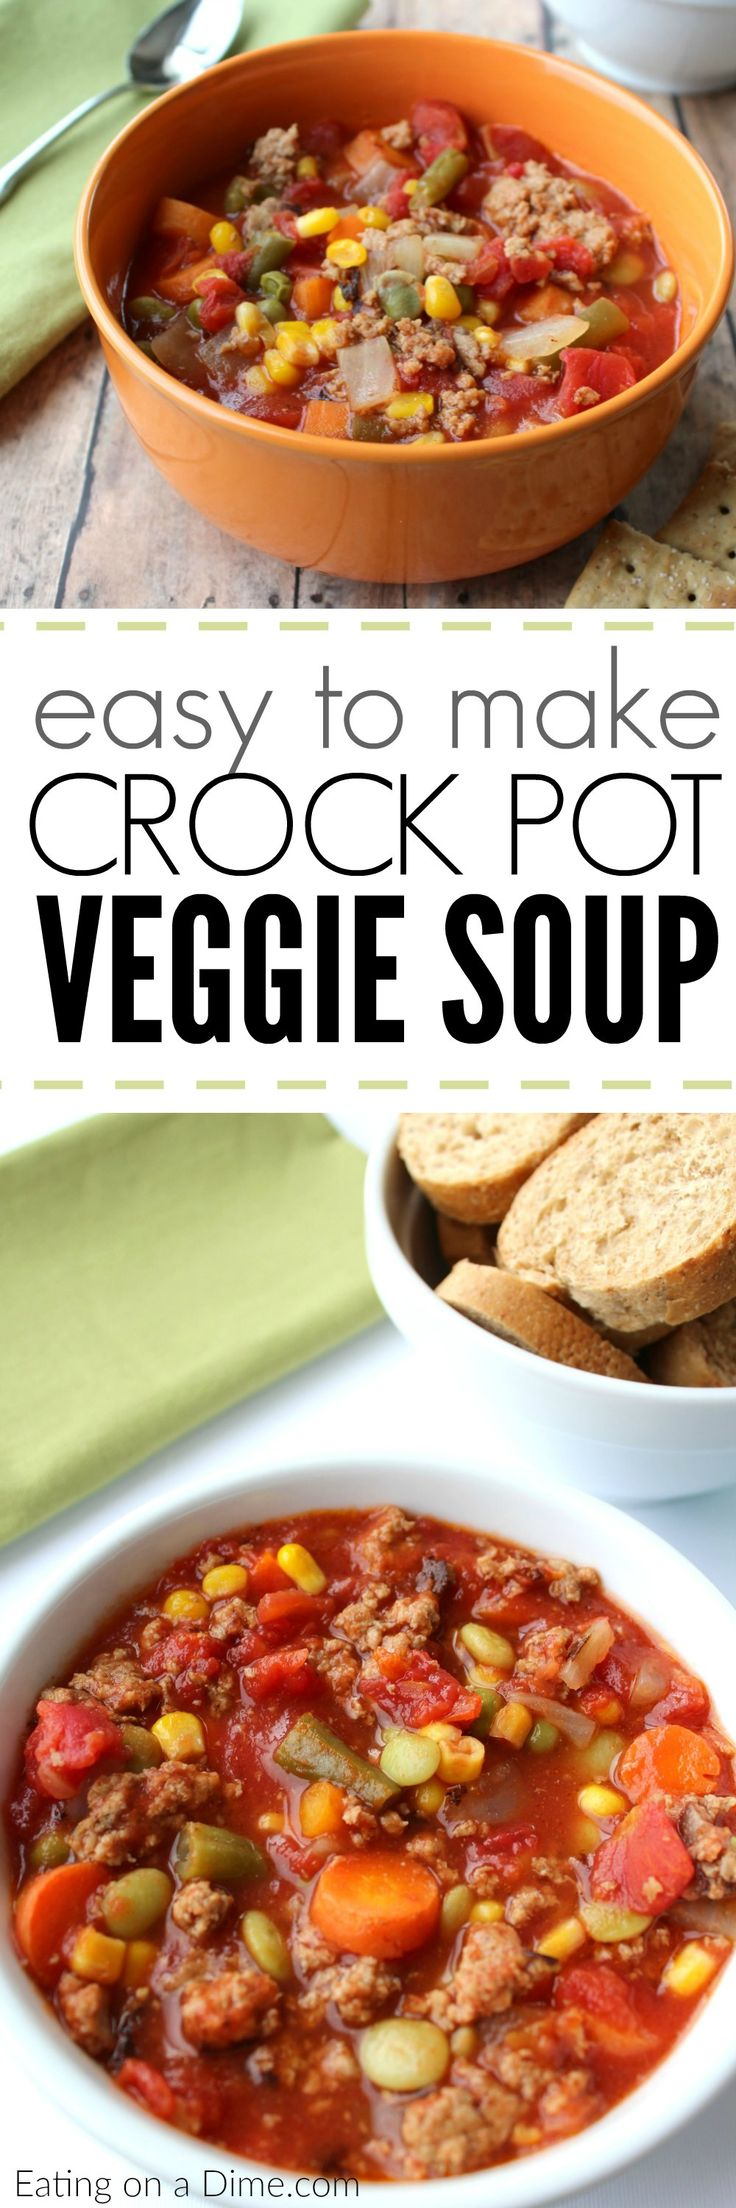 You are going to love this easy Crock pot Veggie Soup. This crock pot vegetable soup with frozen vegetables is quick to throw together and tastes amazing. You are going to love this crock pot soup recipe!